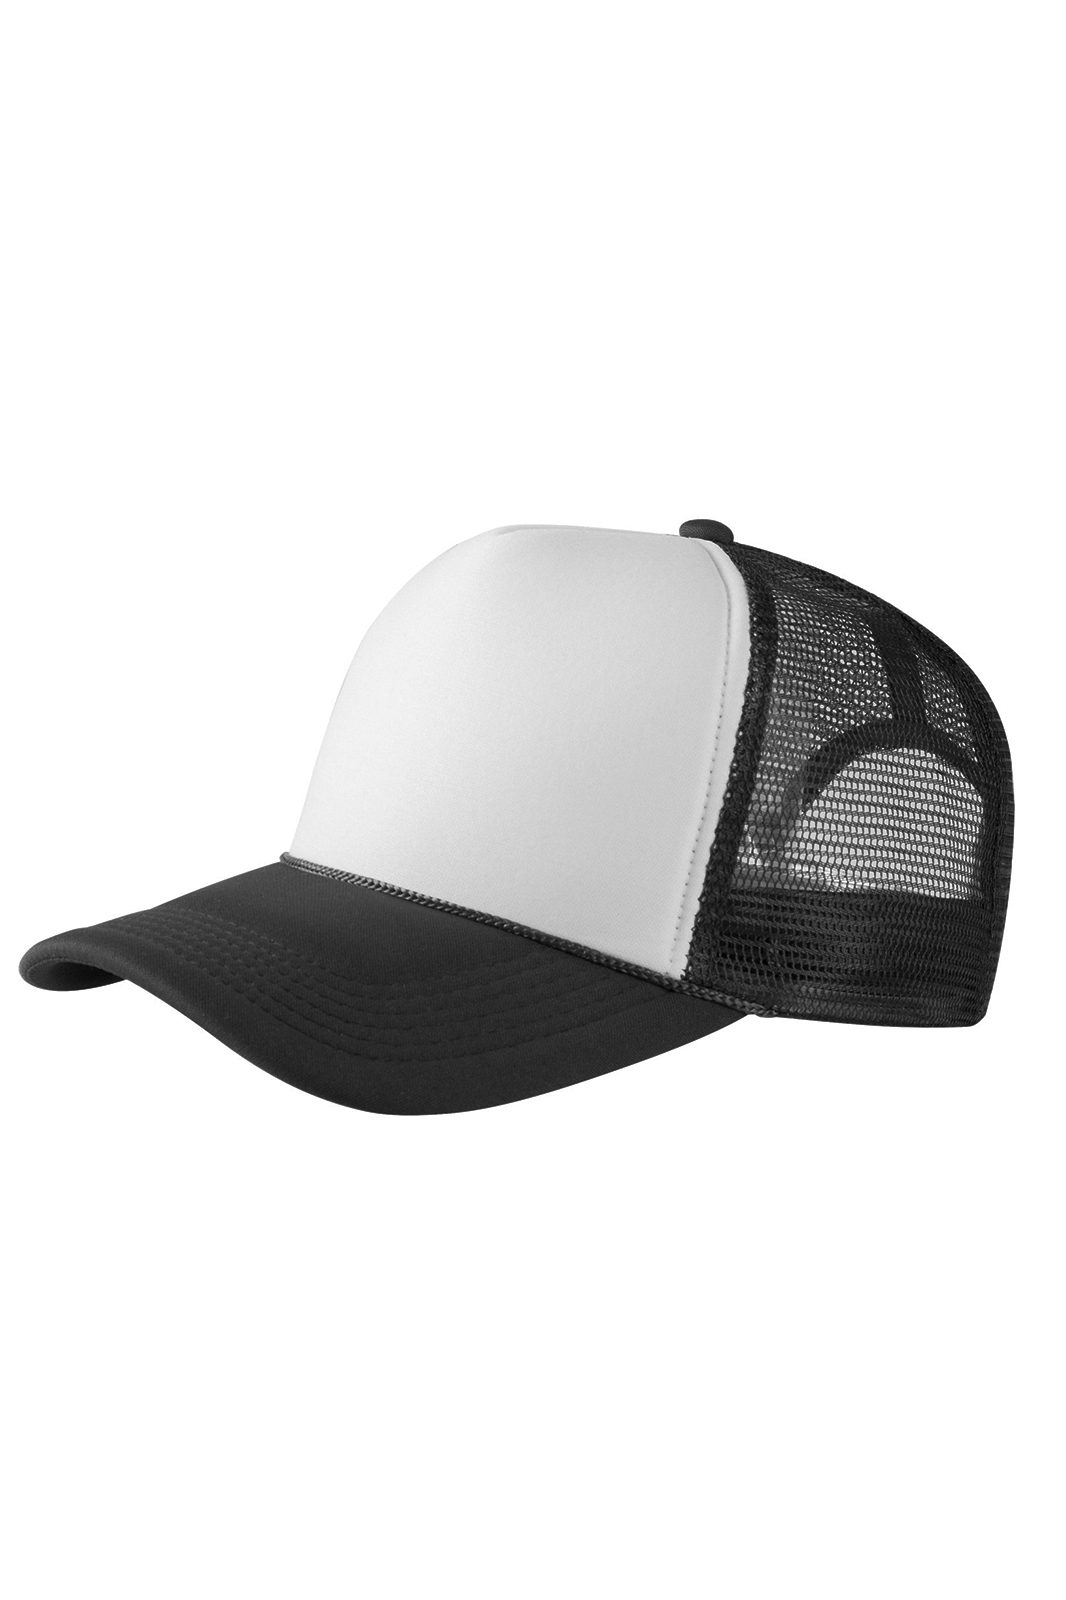 Baseball Cap Trucker High Profile Black/white